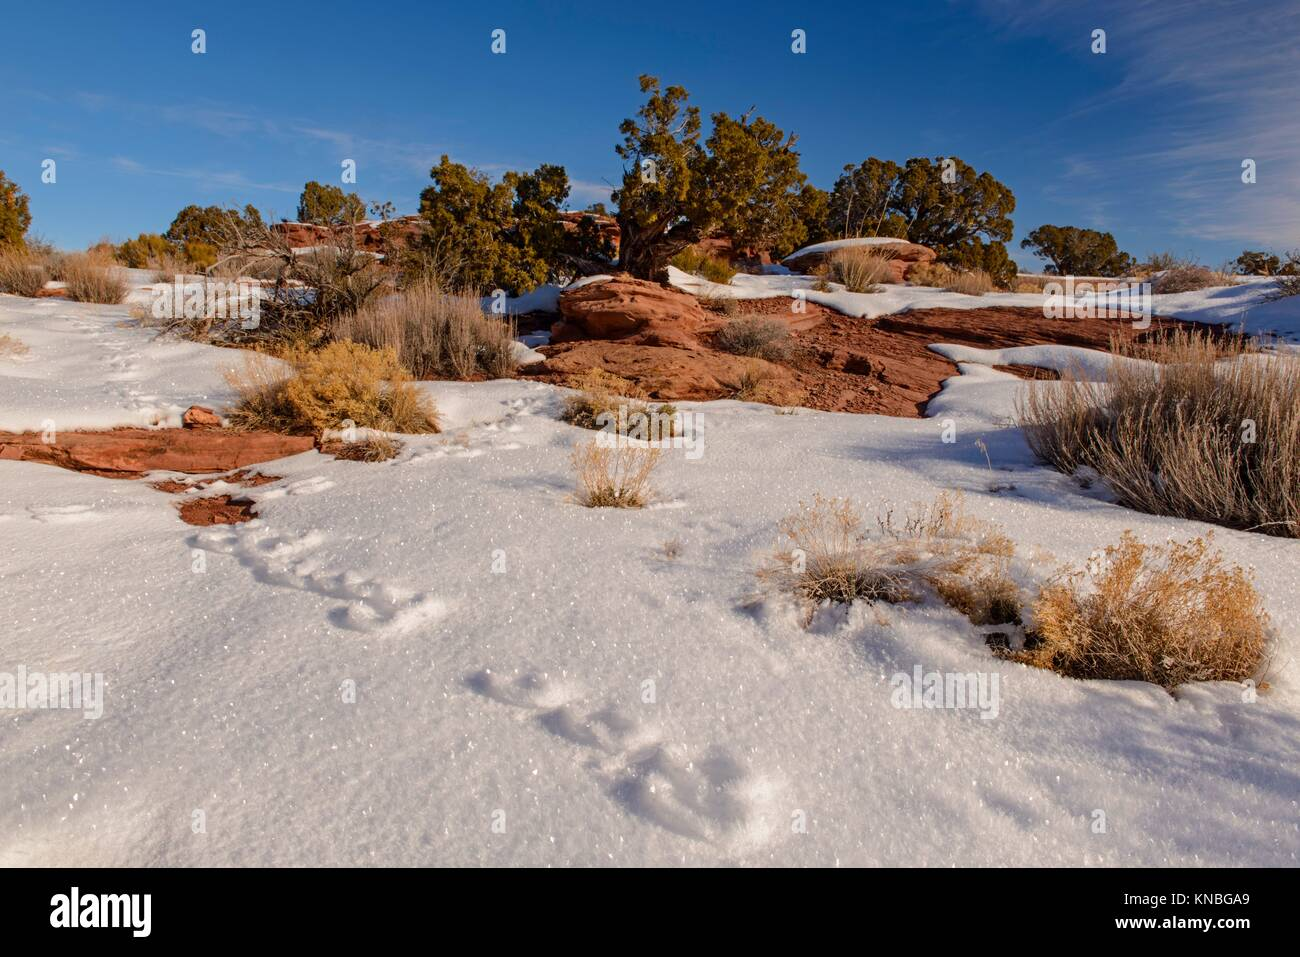 Cottontail Tracks High Resolution Stock Photography and Images - Alamy